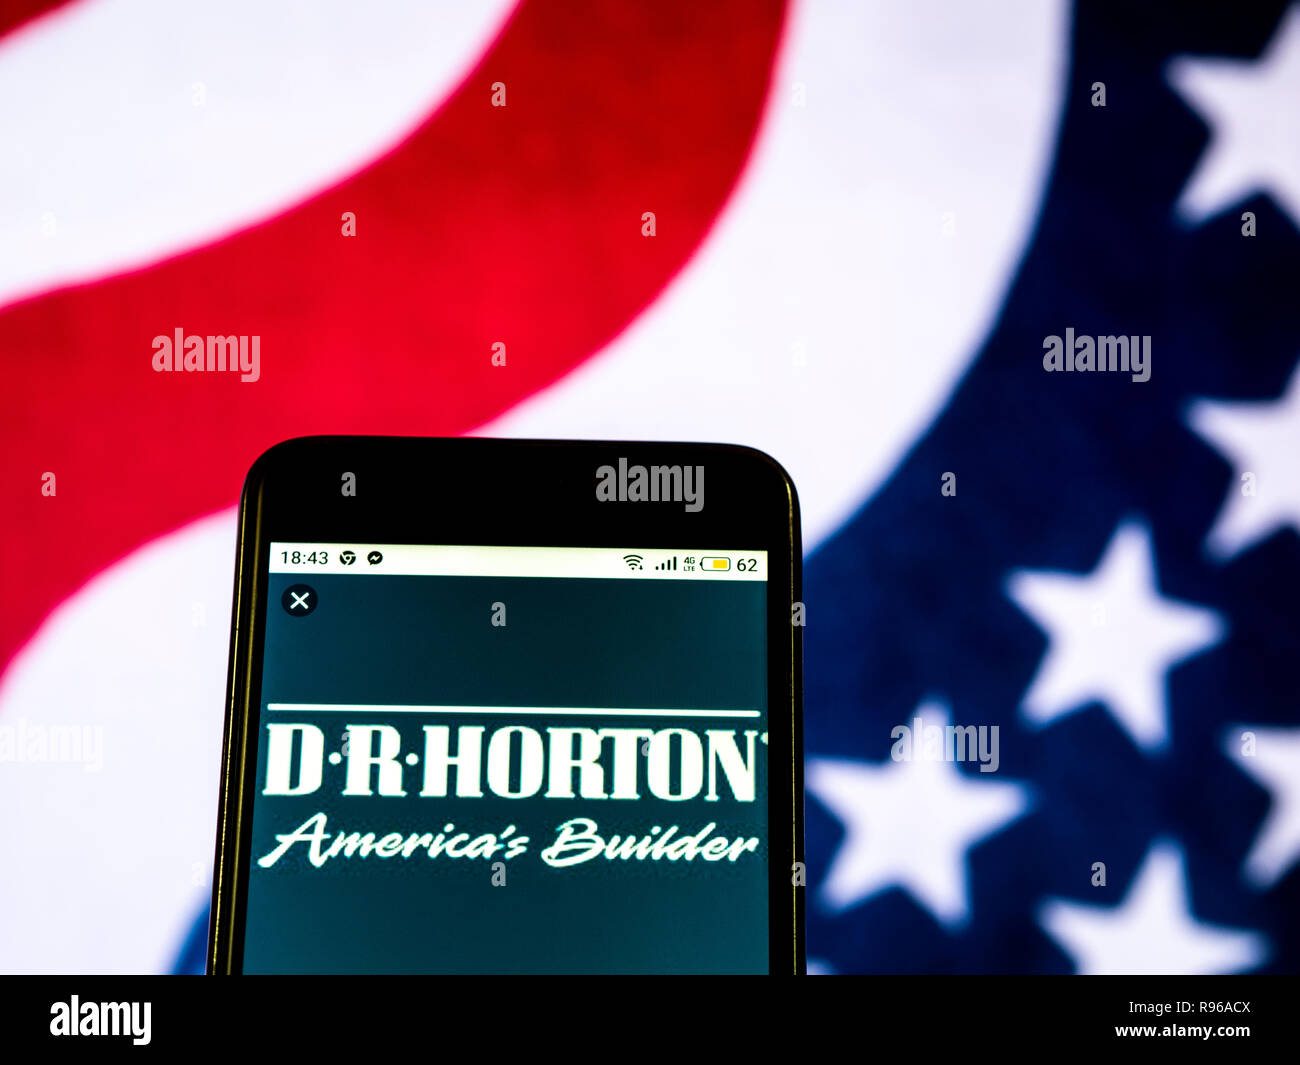 hight resolution of d r horton home construction company logo seen displayed on smart phone